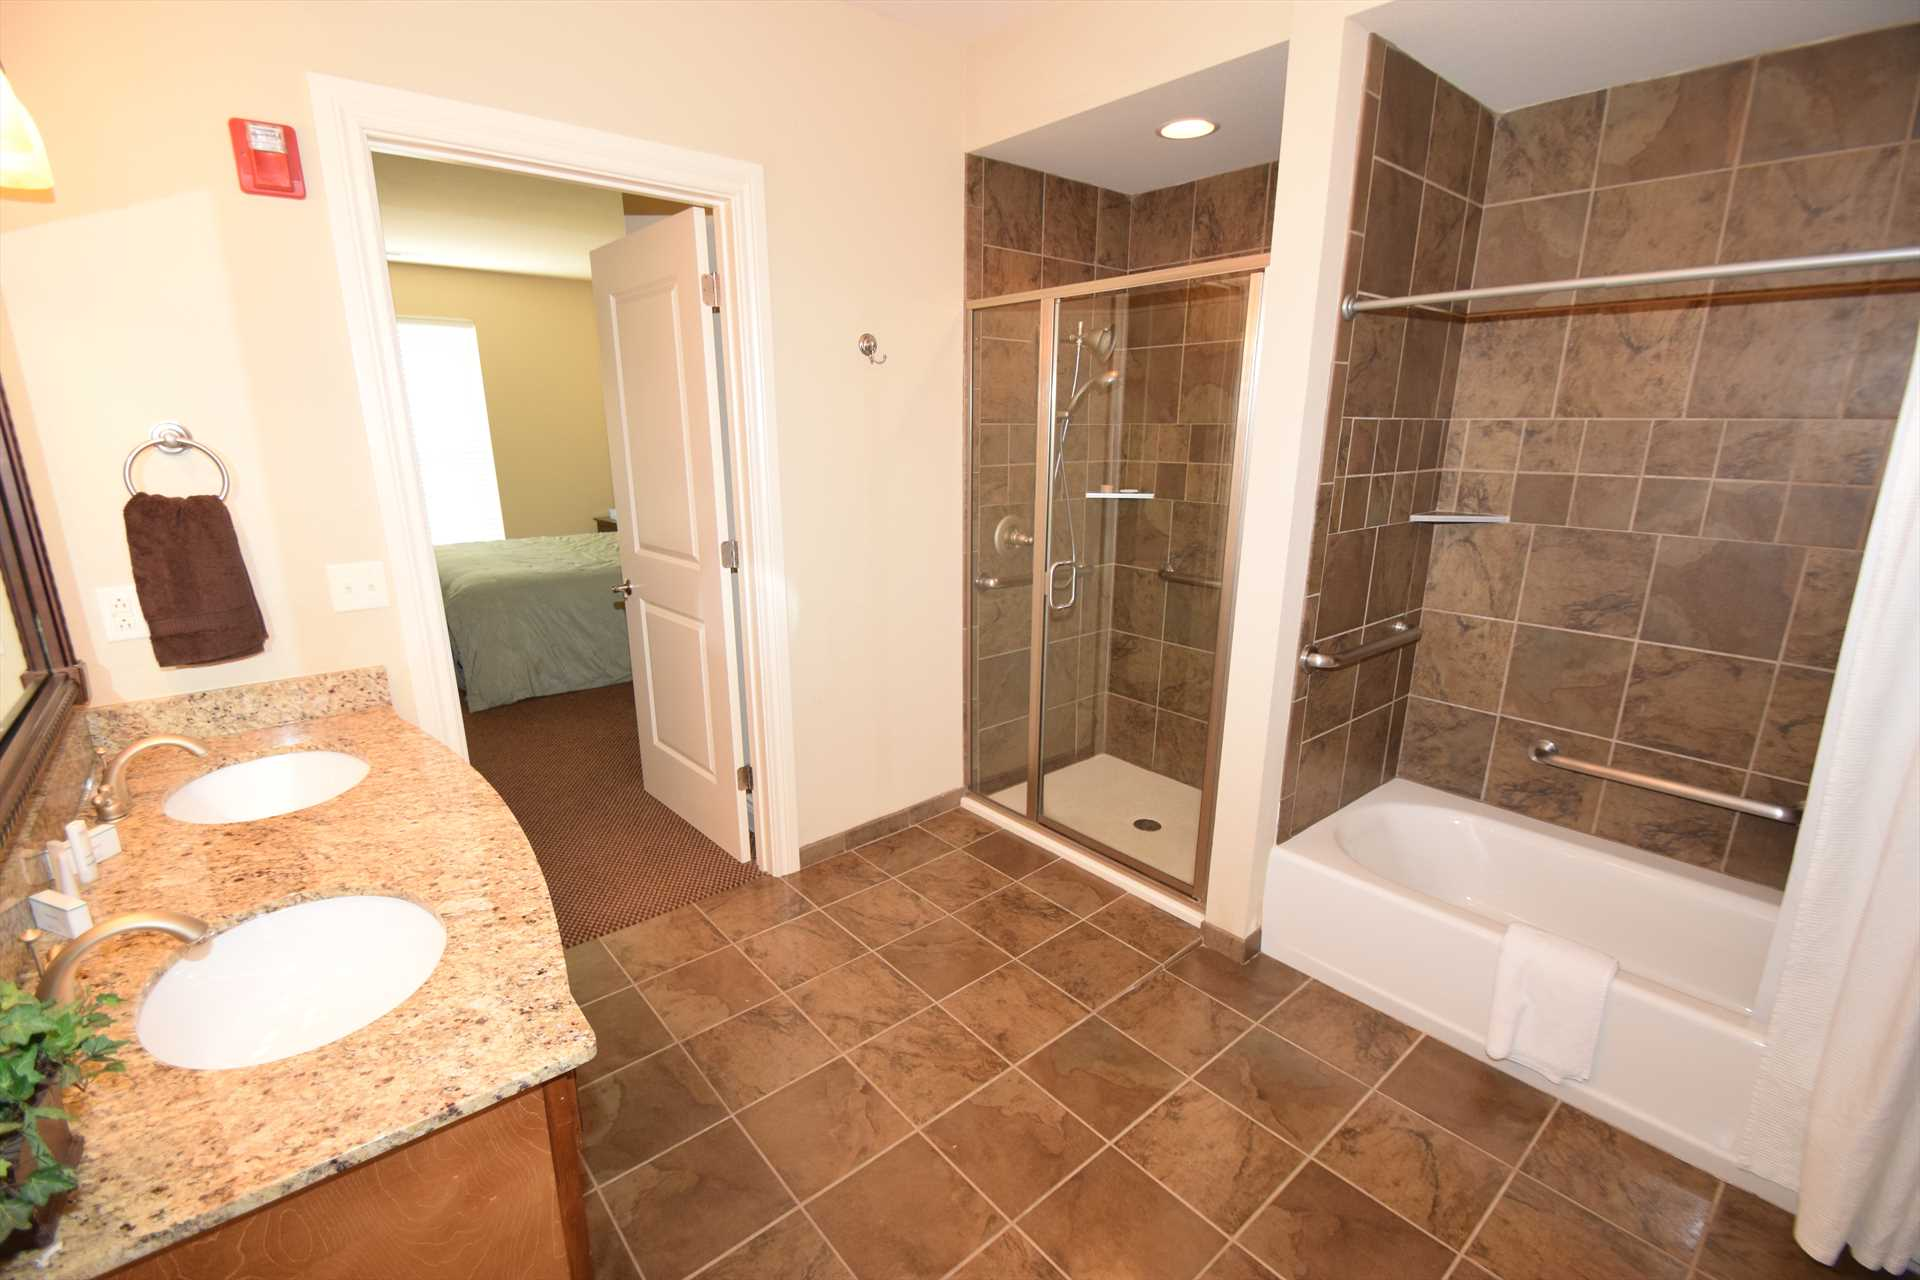 This spacious bathroom includes a tub and a walk-in shower.